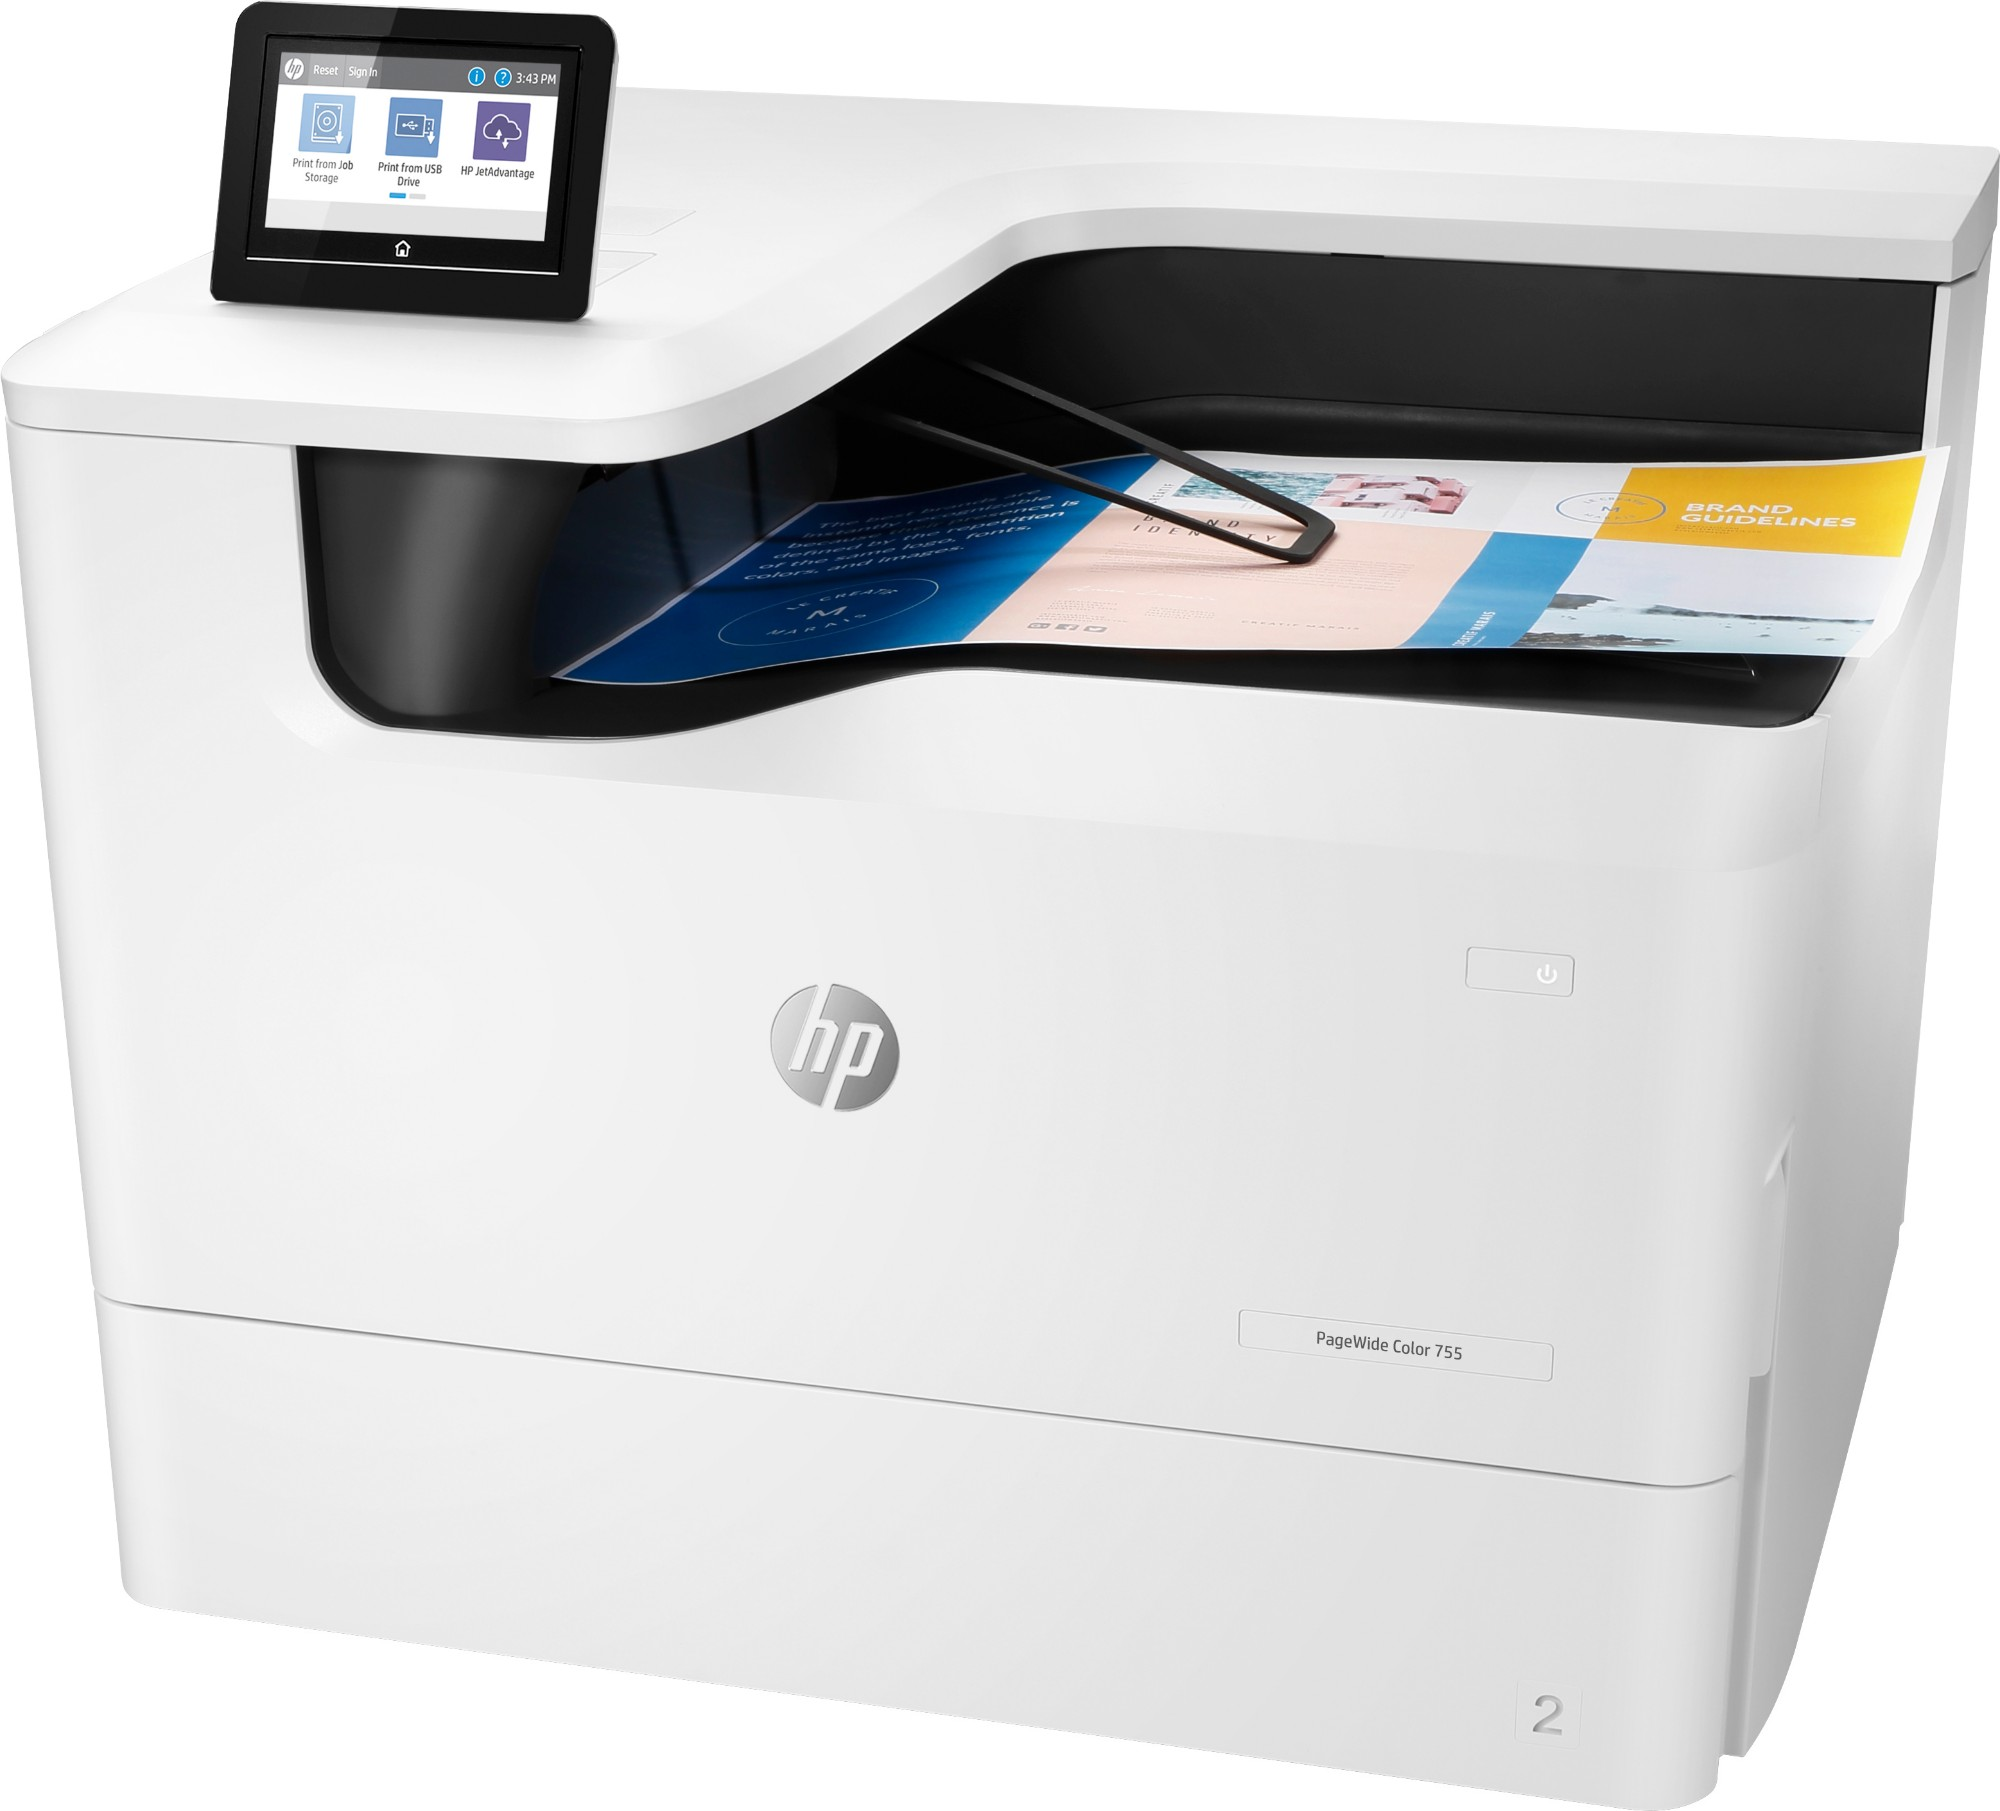 HP PageWide Color 755dn inkjet printer Colour 2400 x 1200 DPI A3 Wi-Fi 4PZ47A#B19